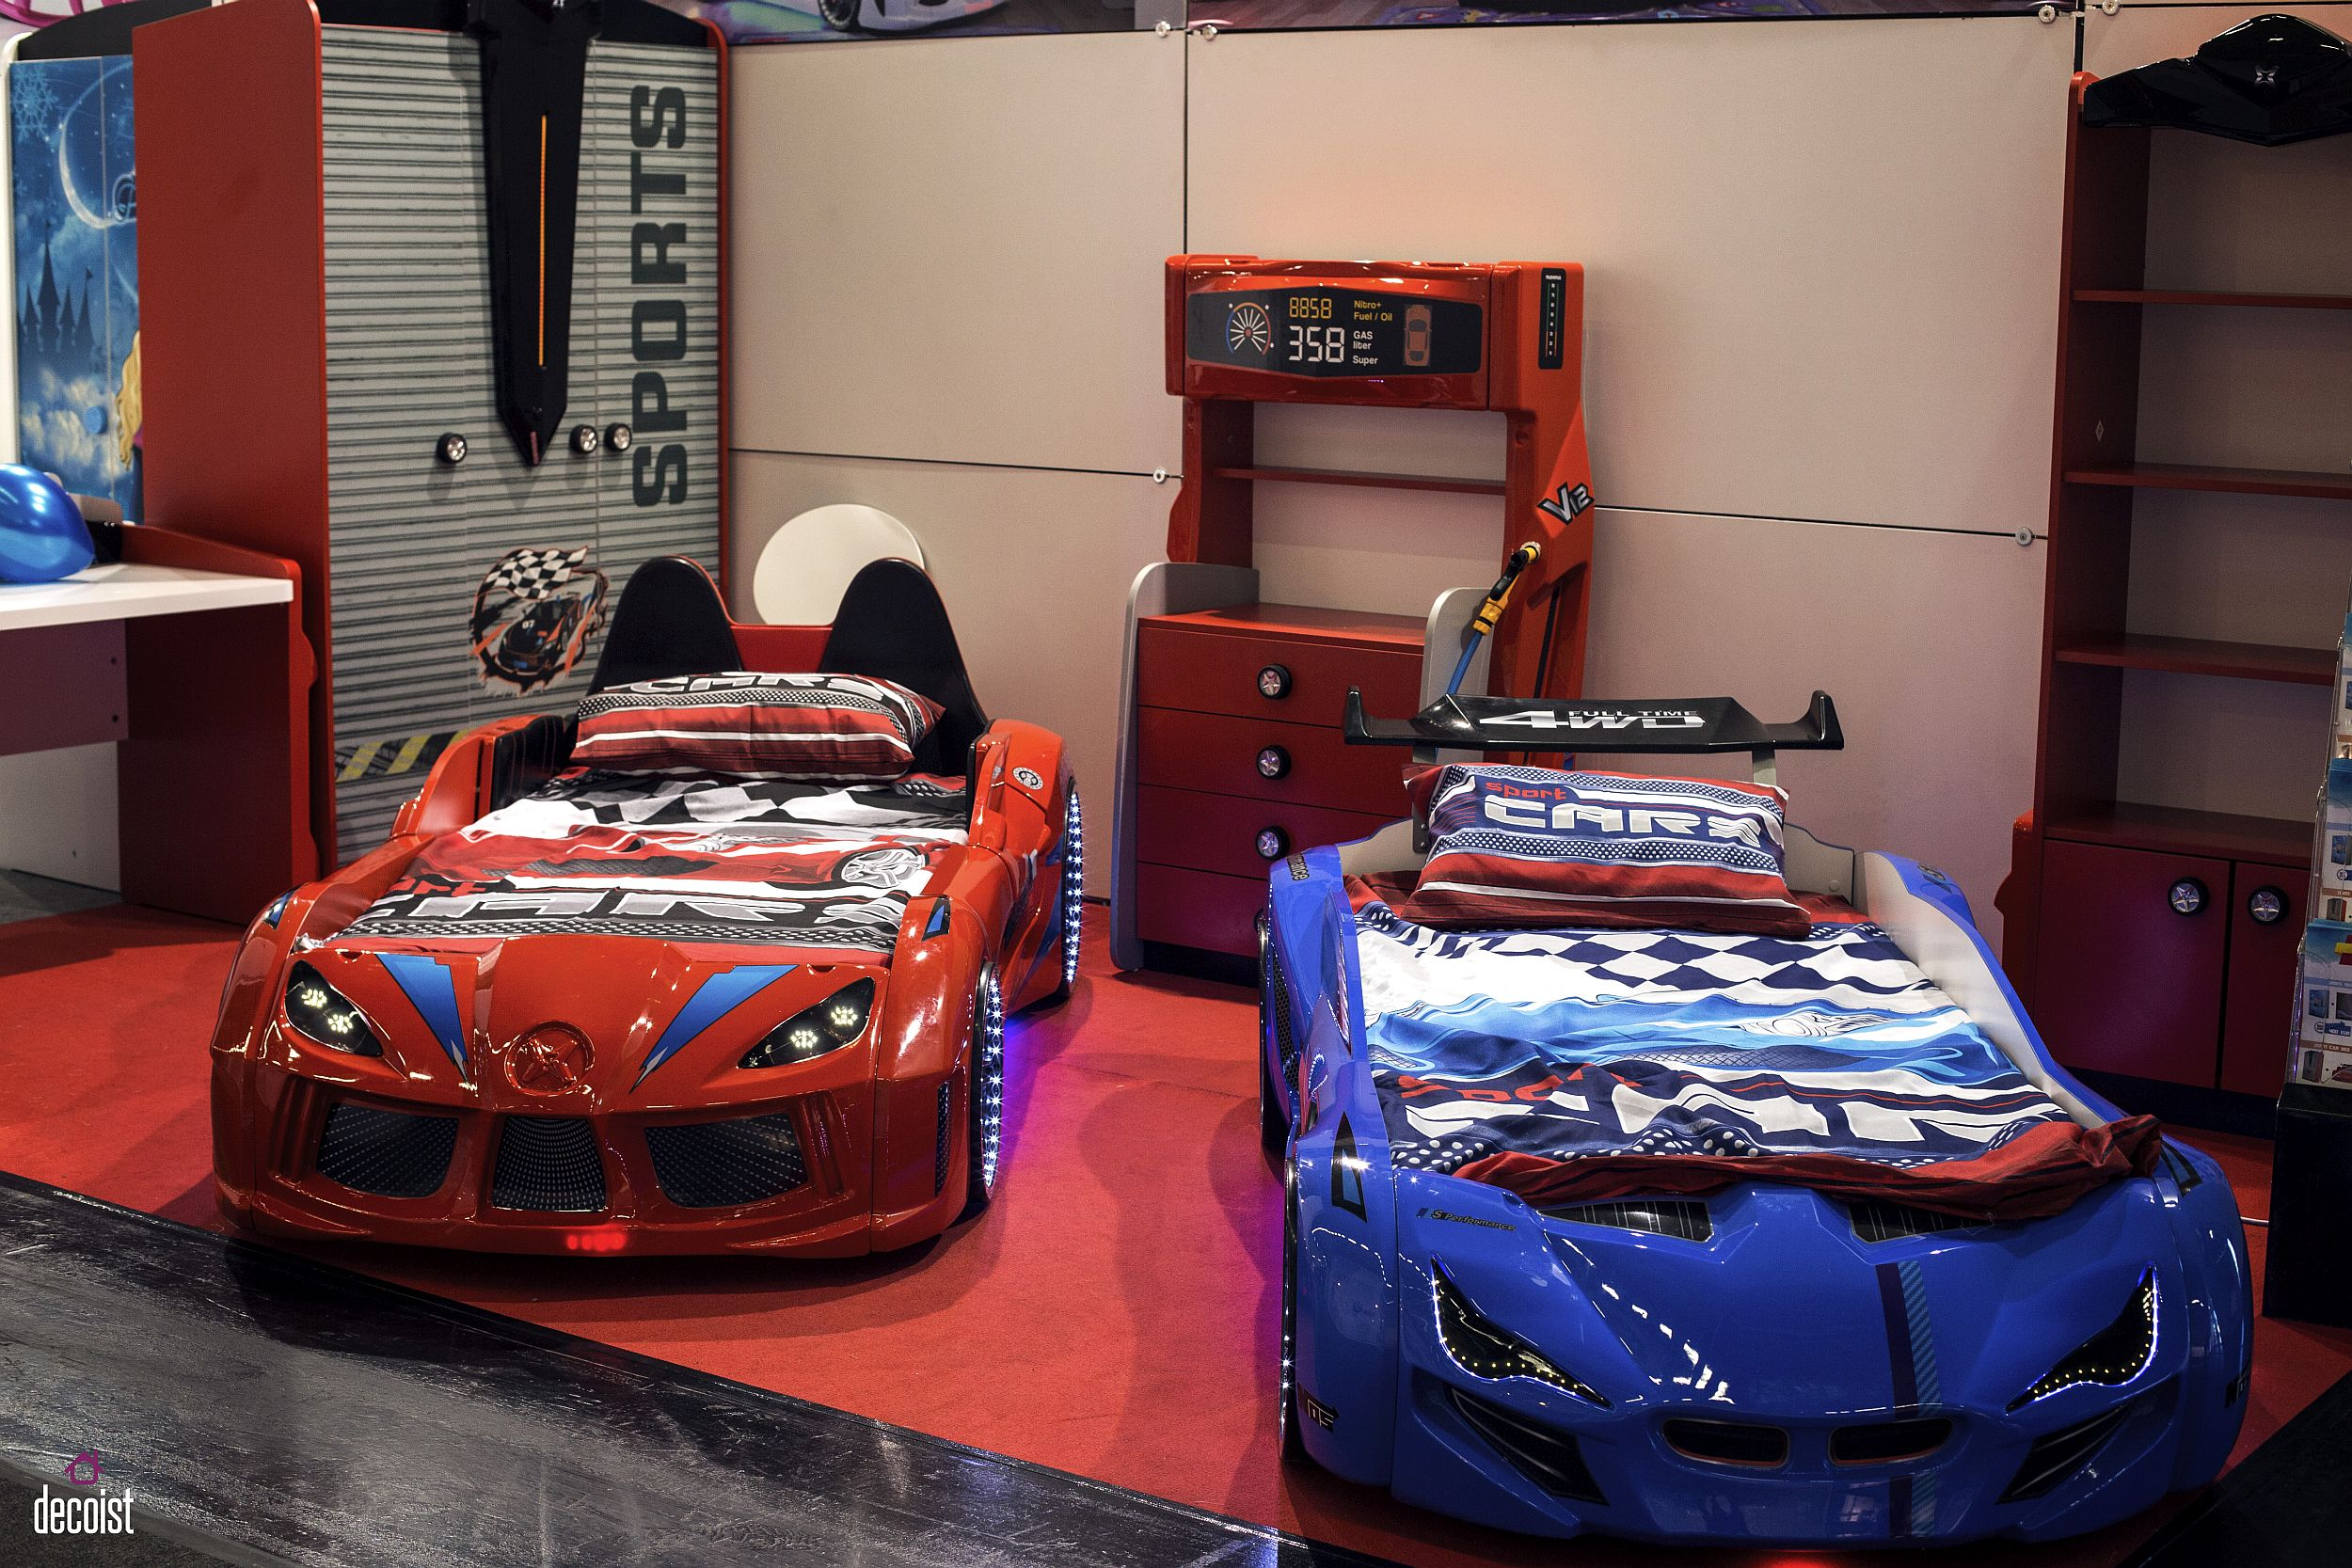 Race car kids' beds in red and blue with matching decor